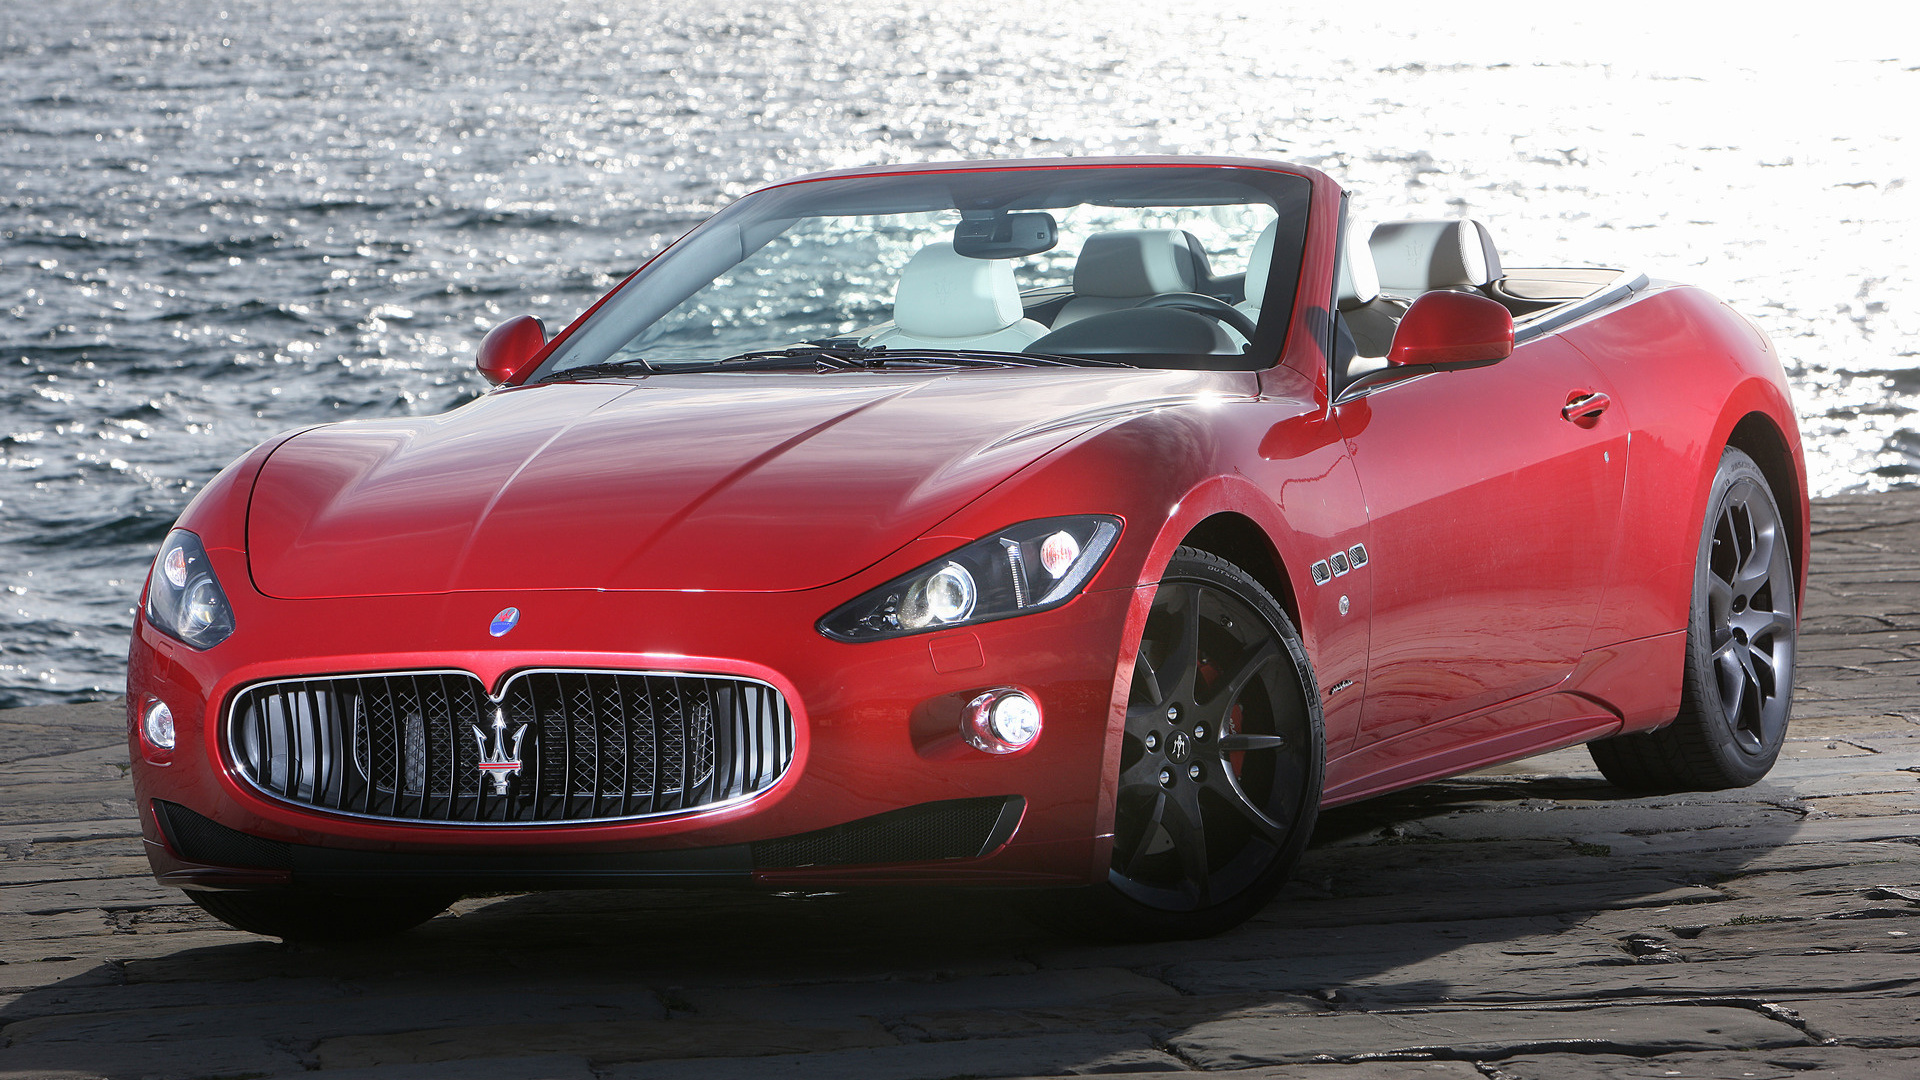 https://www.carpixel.net/w/0038c8cd8ceedc47705bf8205f592d72/maserati-grancabrio-sport-wallpaper-hd-60043.jpg